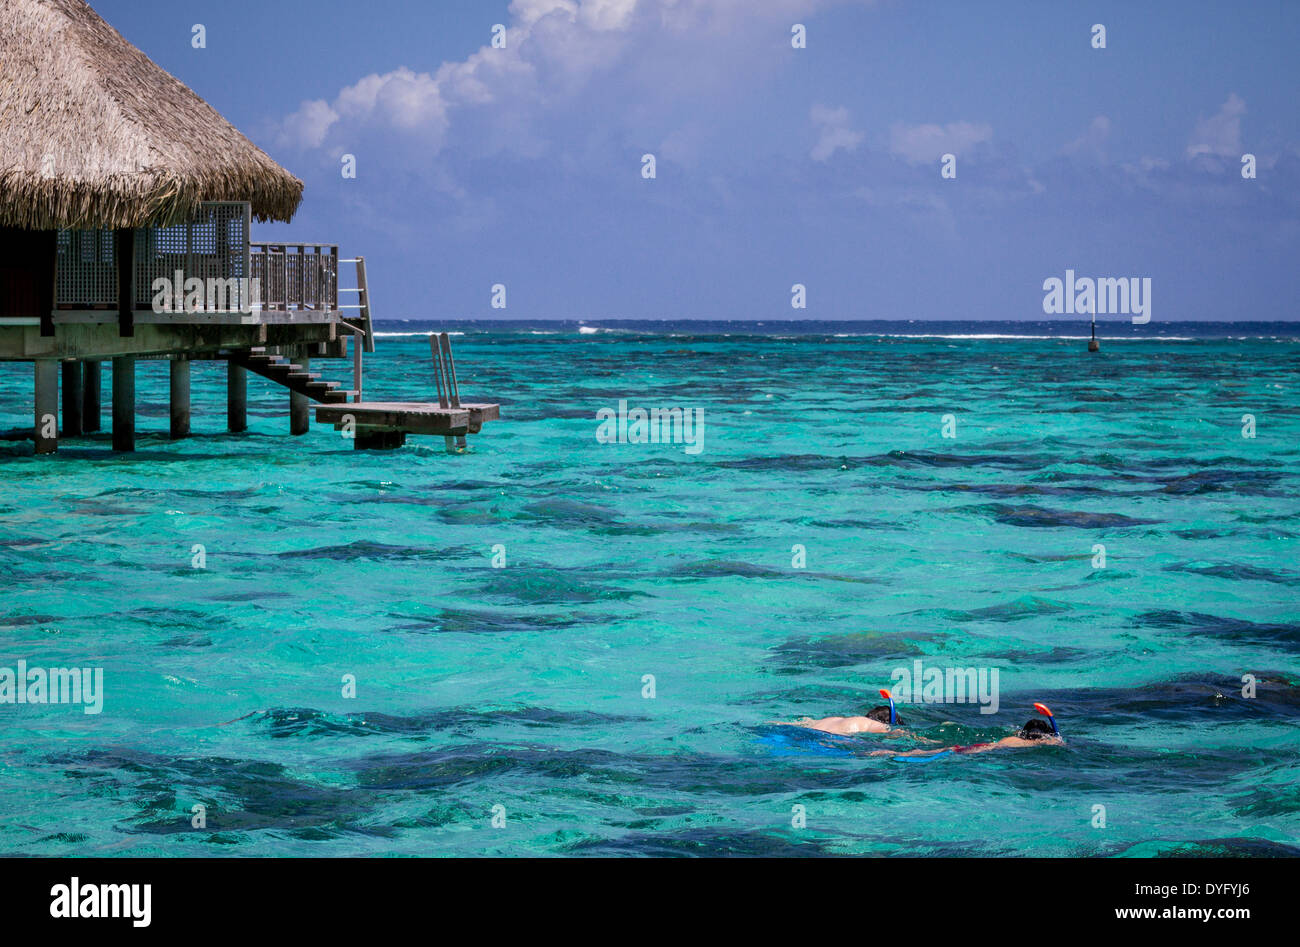 Newlywed couple snorkeling by thatched roof overwater bungalows on vacation in French Polynesia - Stock Image